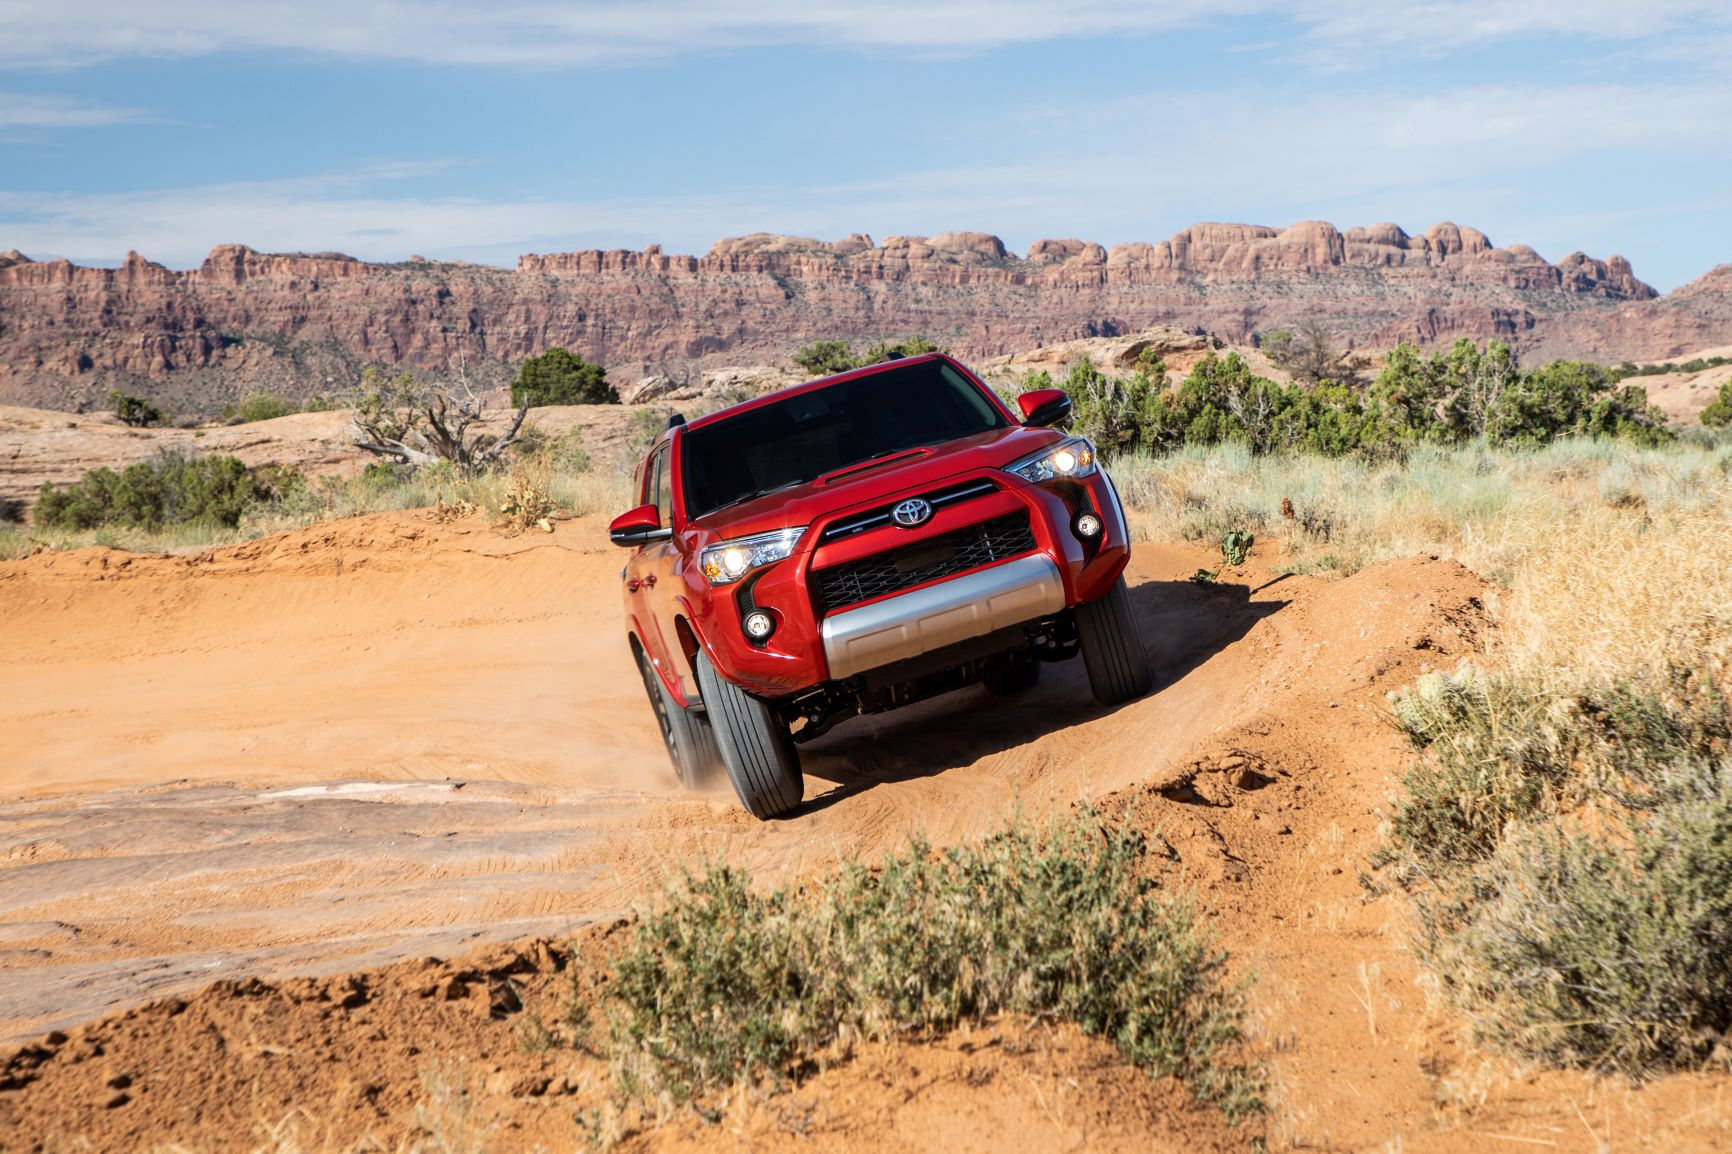 2020 TRD Off-Road Barcelona Red (Buyers Guide)